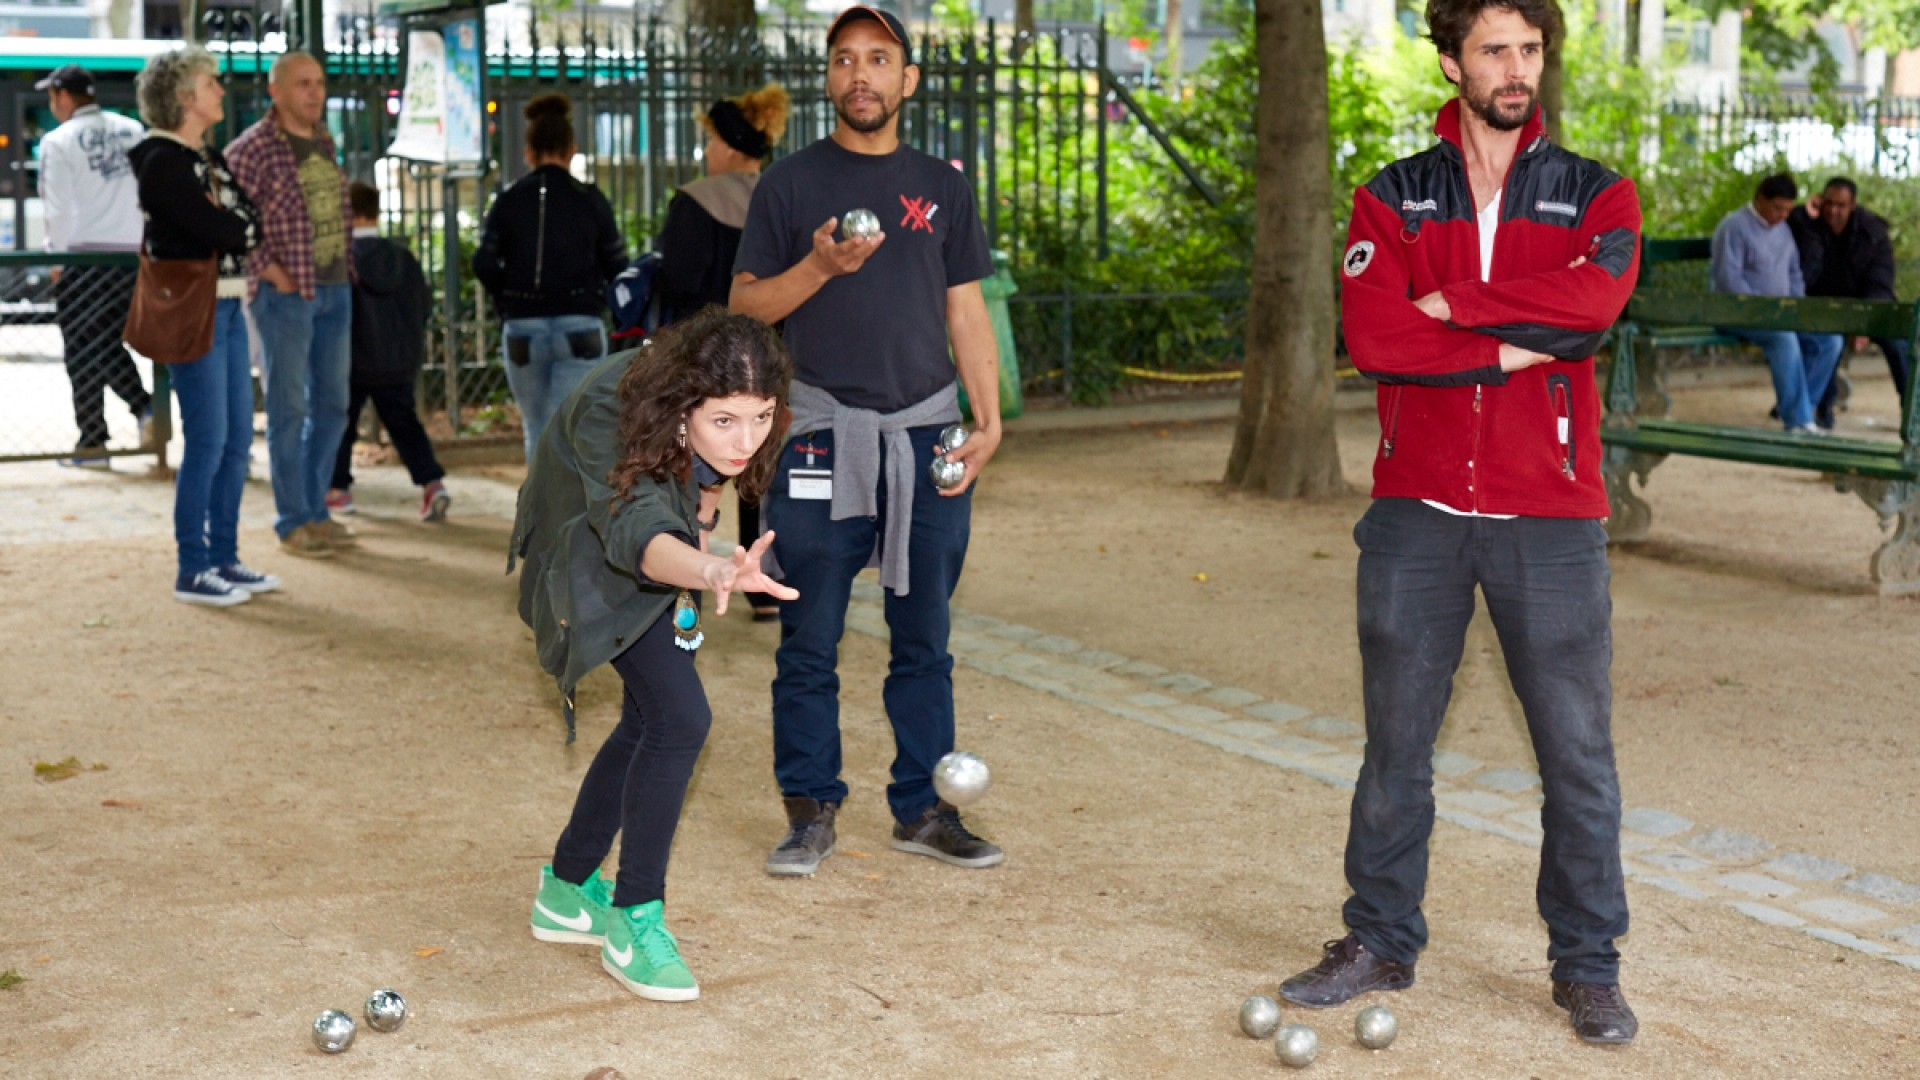 Tournoi de Pétanque Time Out Paris x le lab